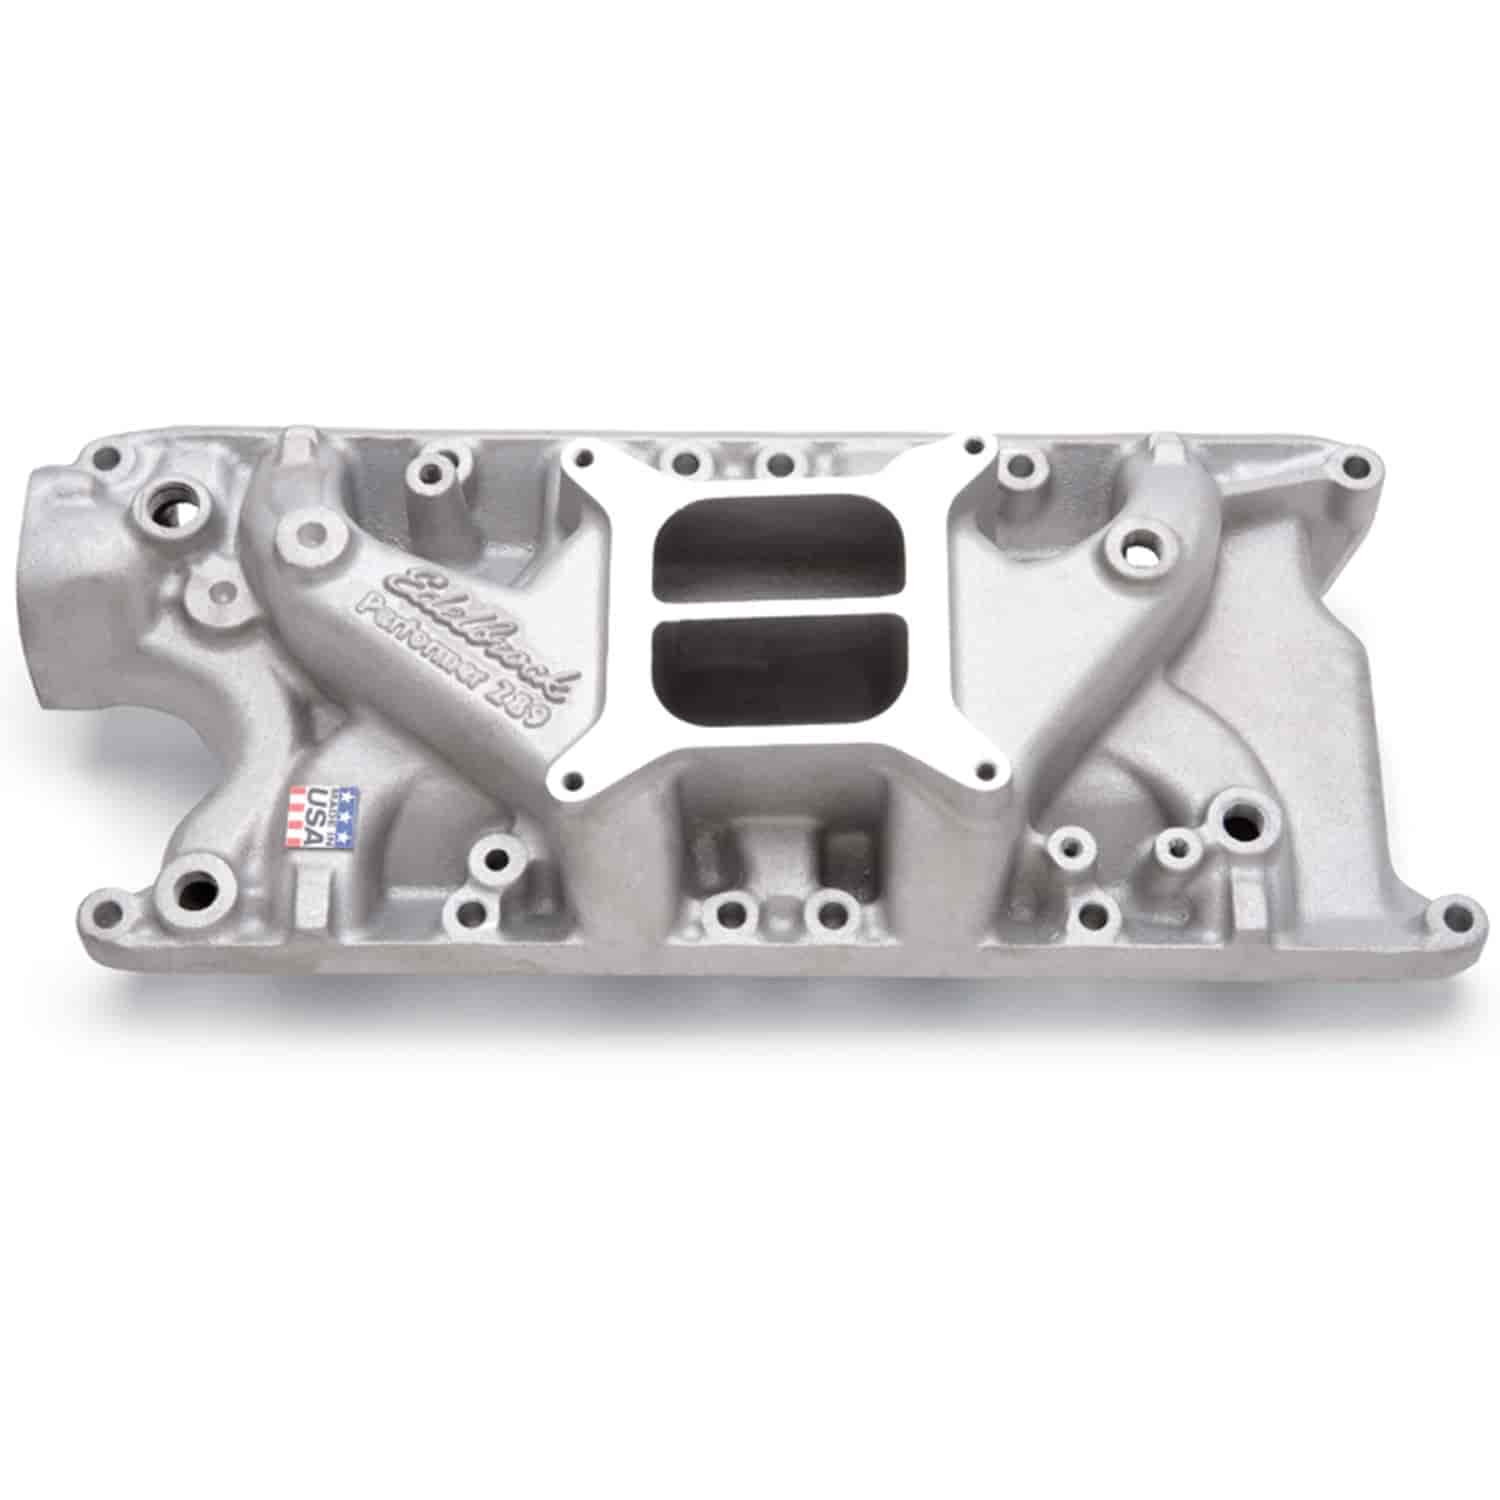 Edelbrock 2121 Performer 289 Ford Intake Manifold Jegs 1980 Bronco Air Box